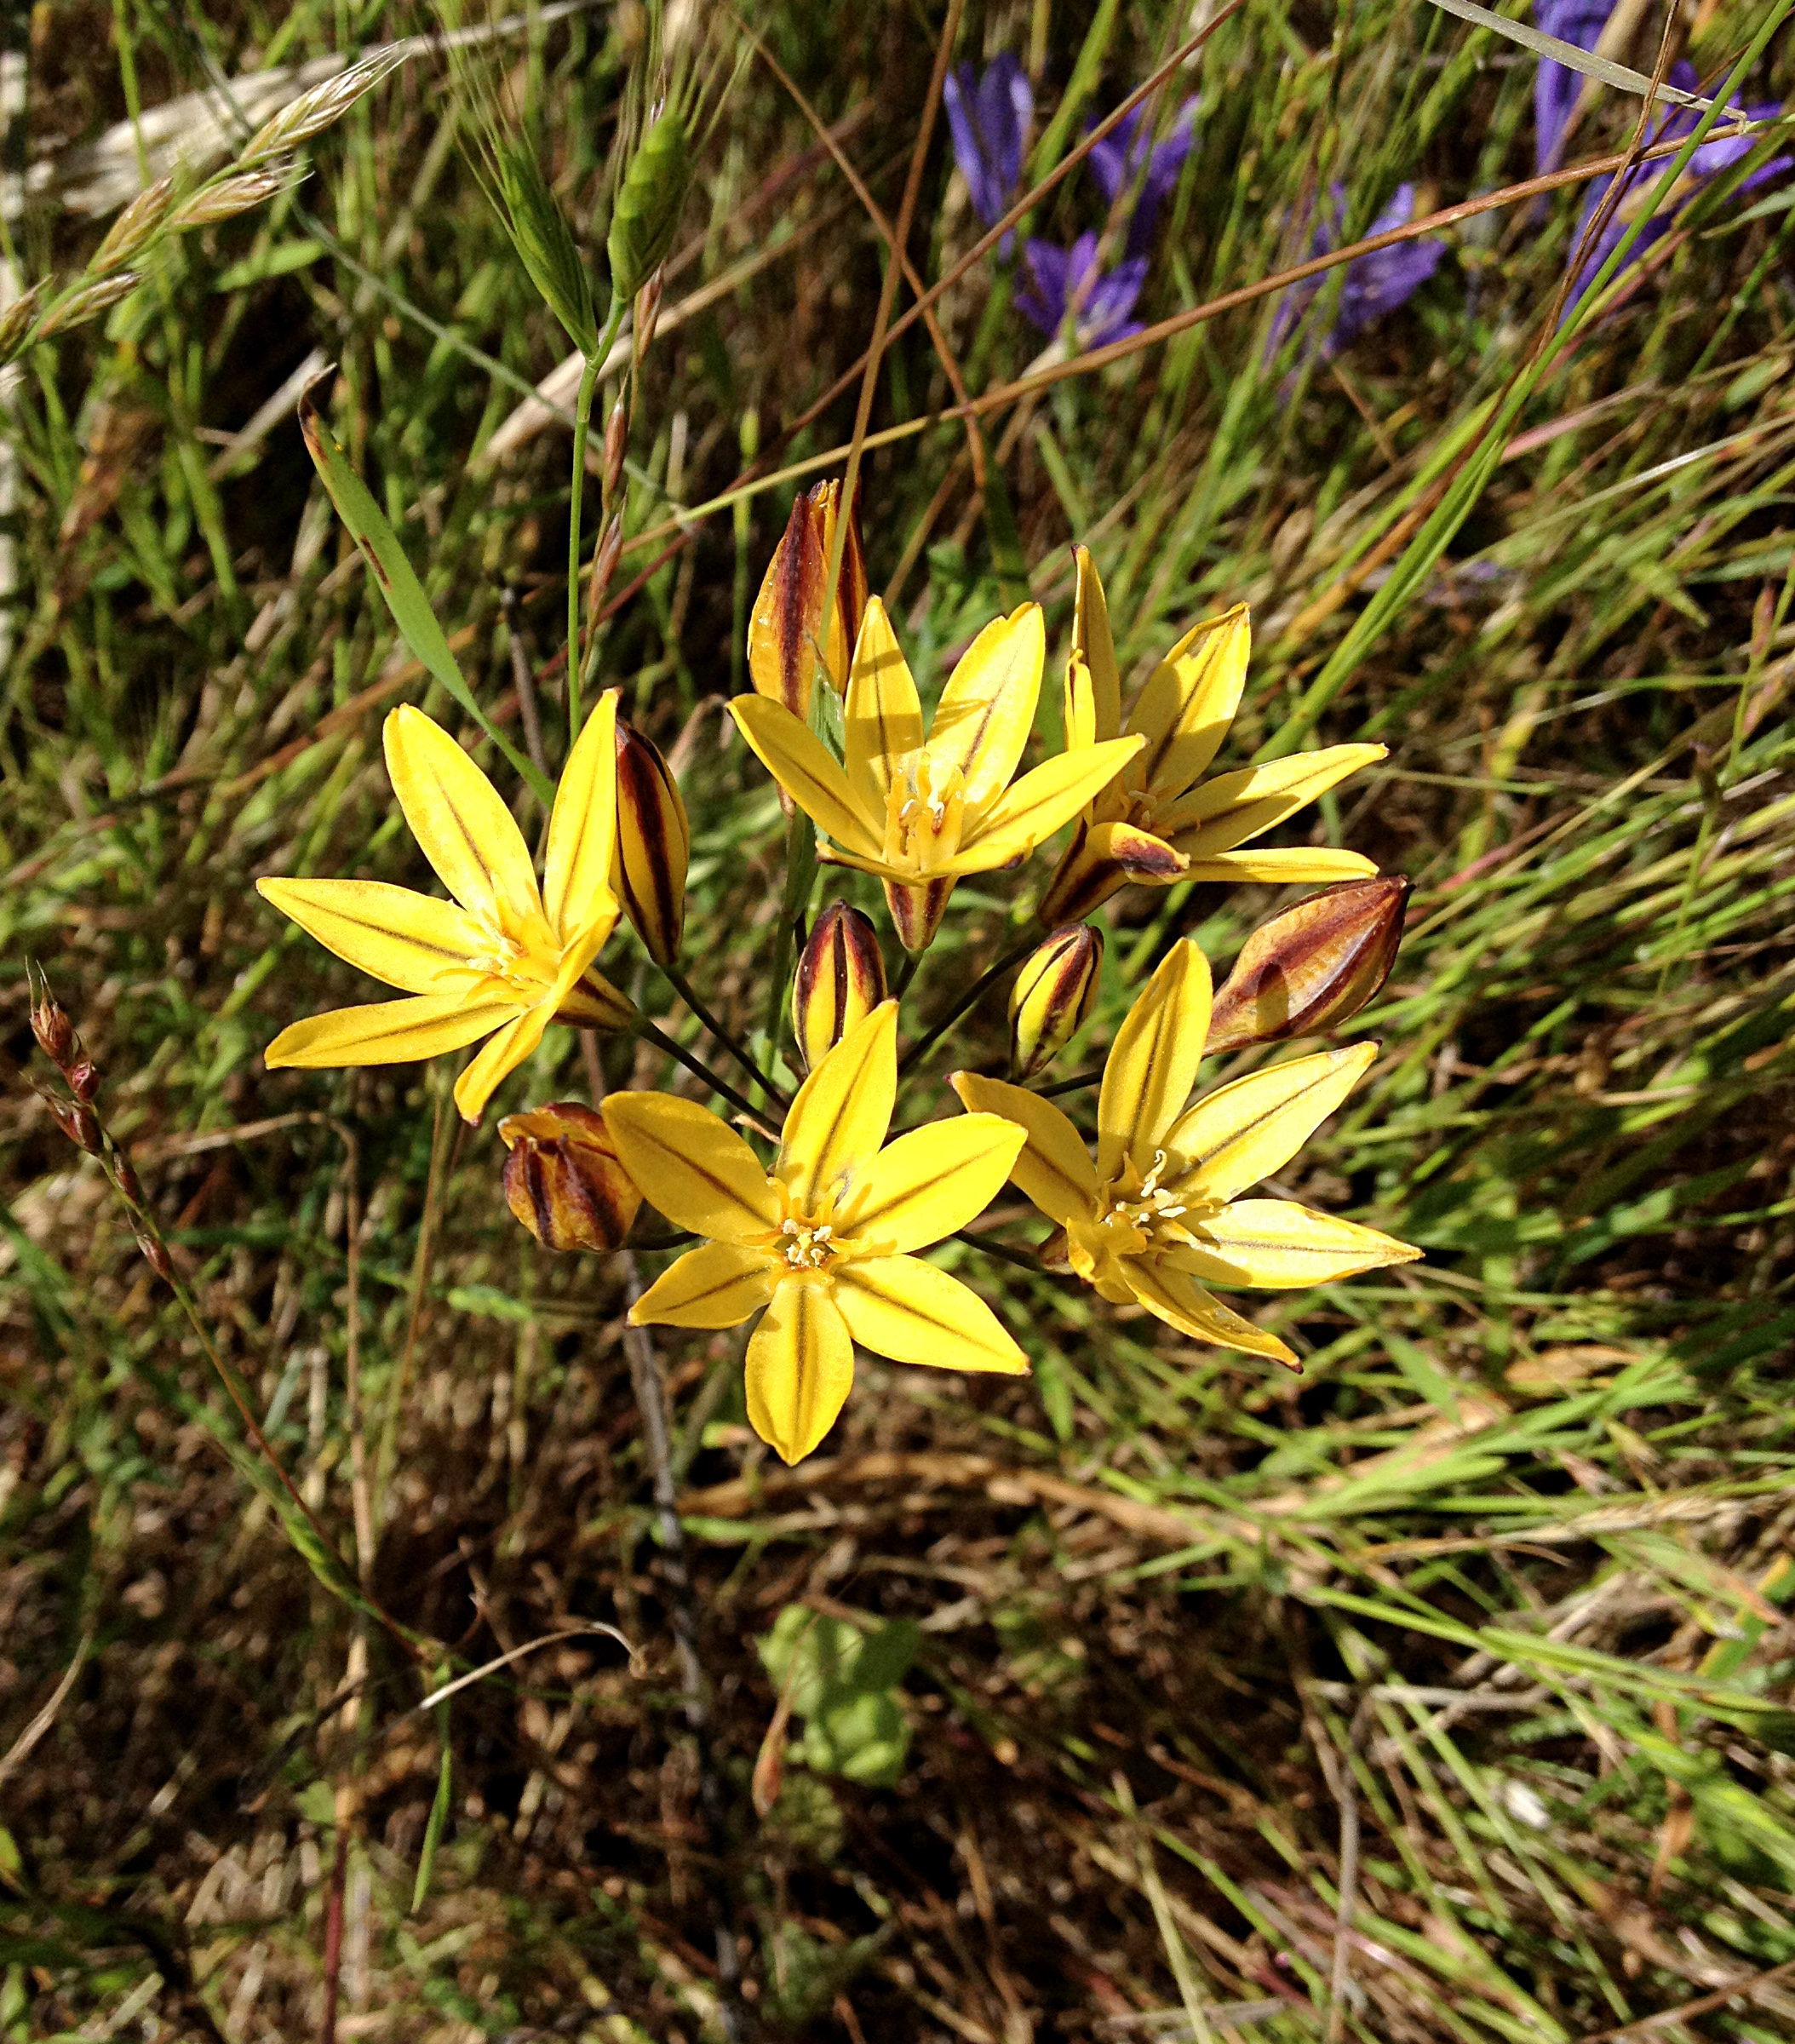 Golden Brodiaea (Triteleia ixioides) at CCD site. Photo curtesy of Rob Cuthrell